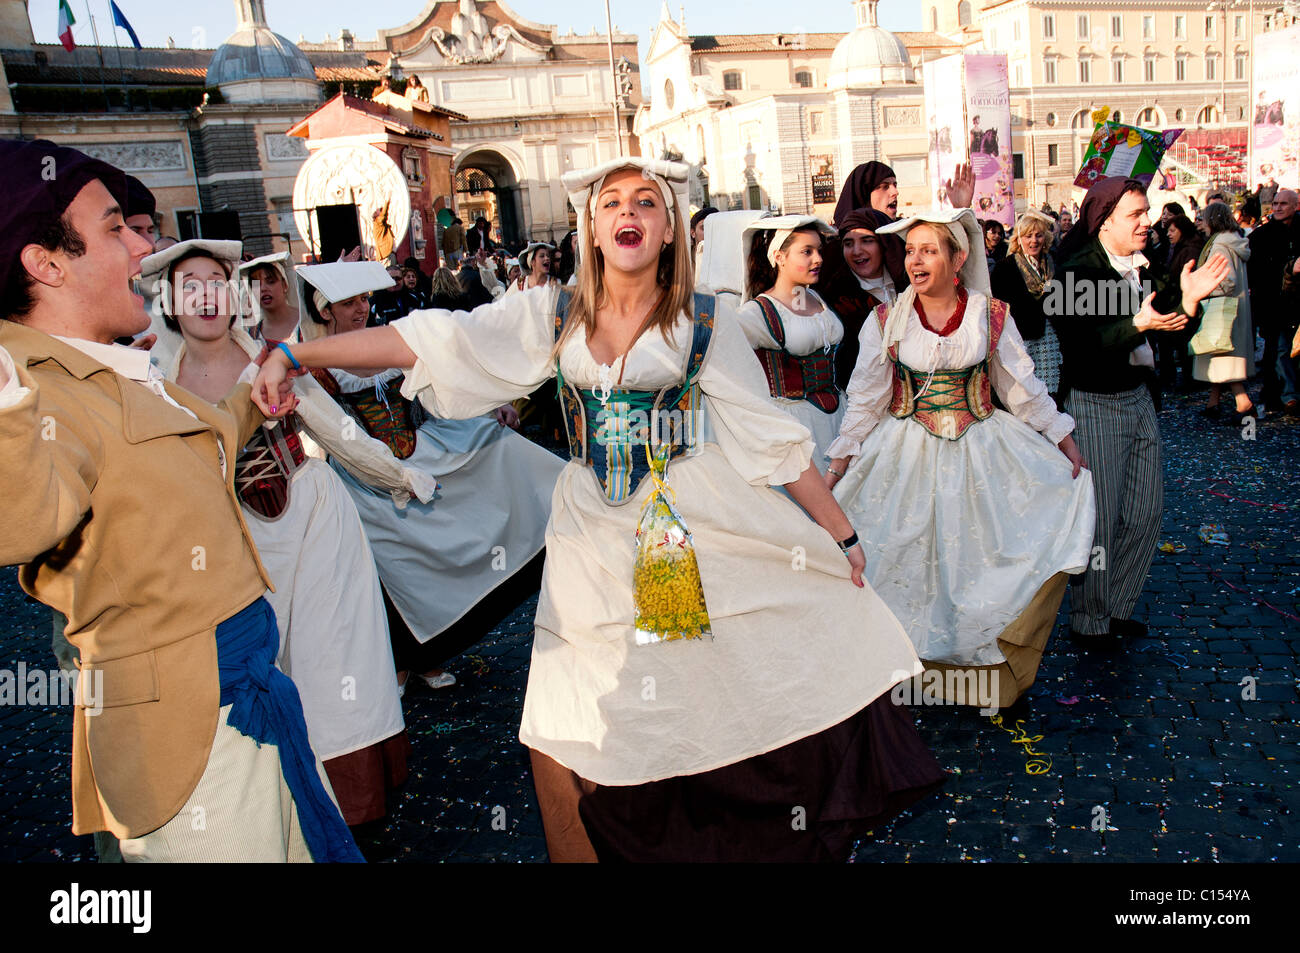 Traditionally dressed revellers at the carnival in Rome, Italy - Stock Image